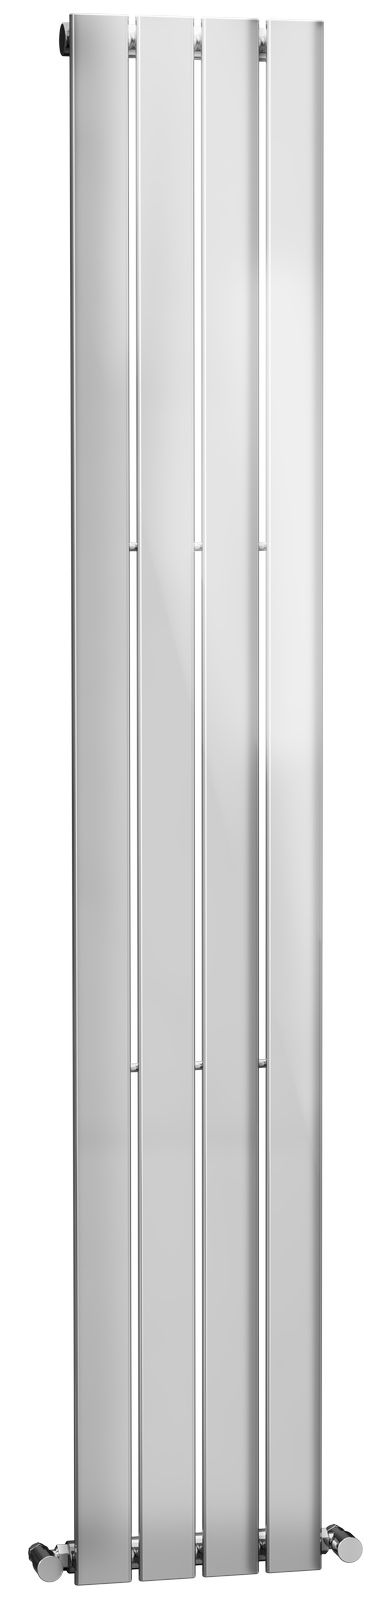 Cassellie Motif Vertical Designer Radiator - 1800mm x 300mm - Chrome